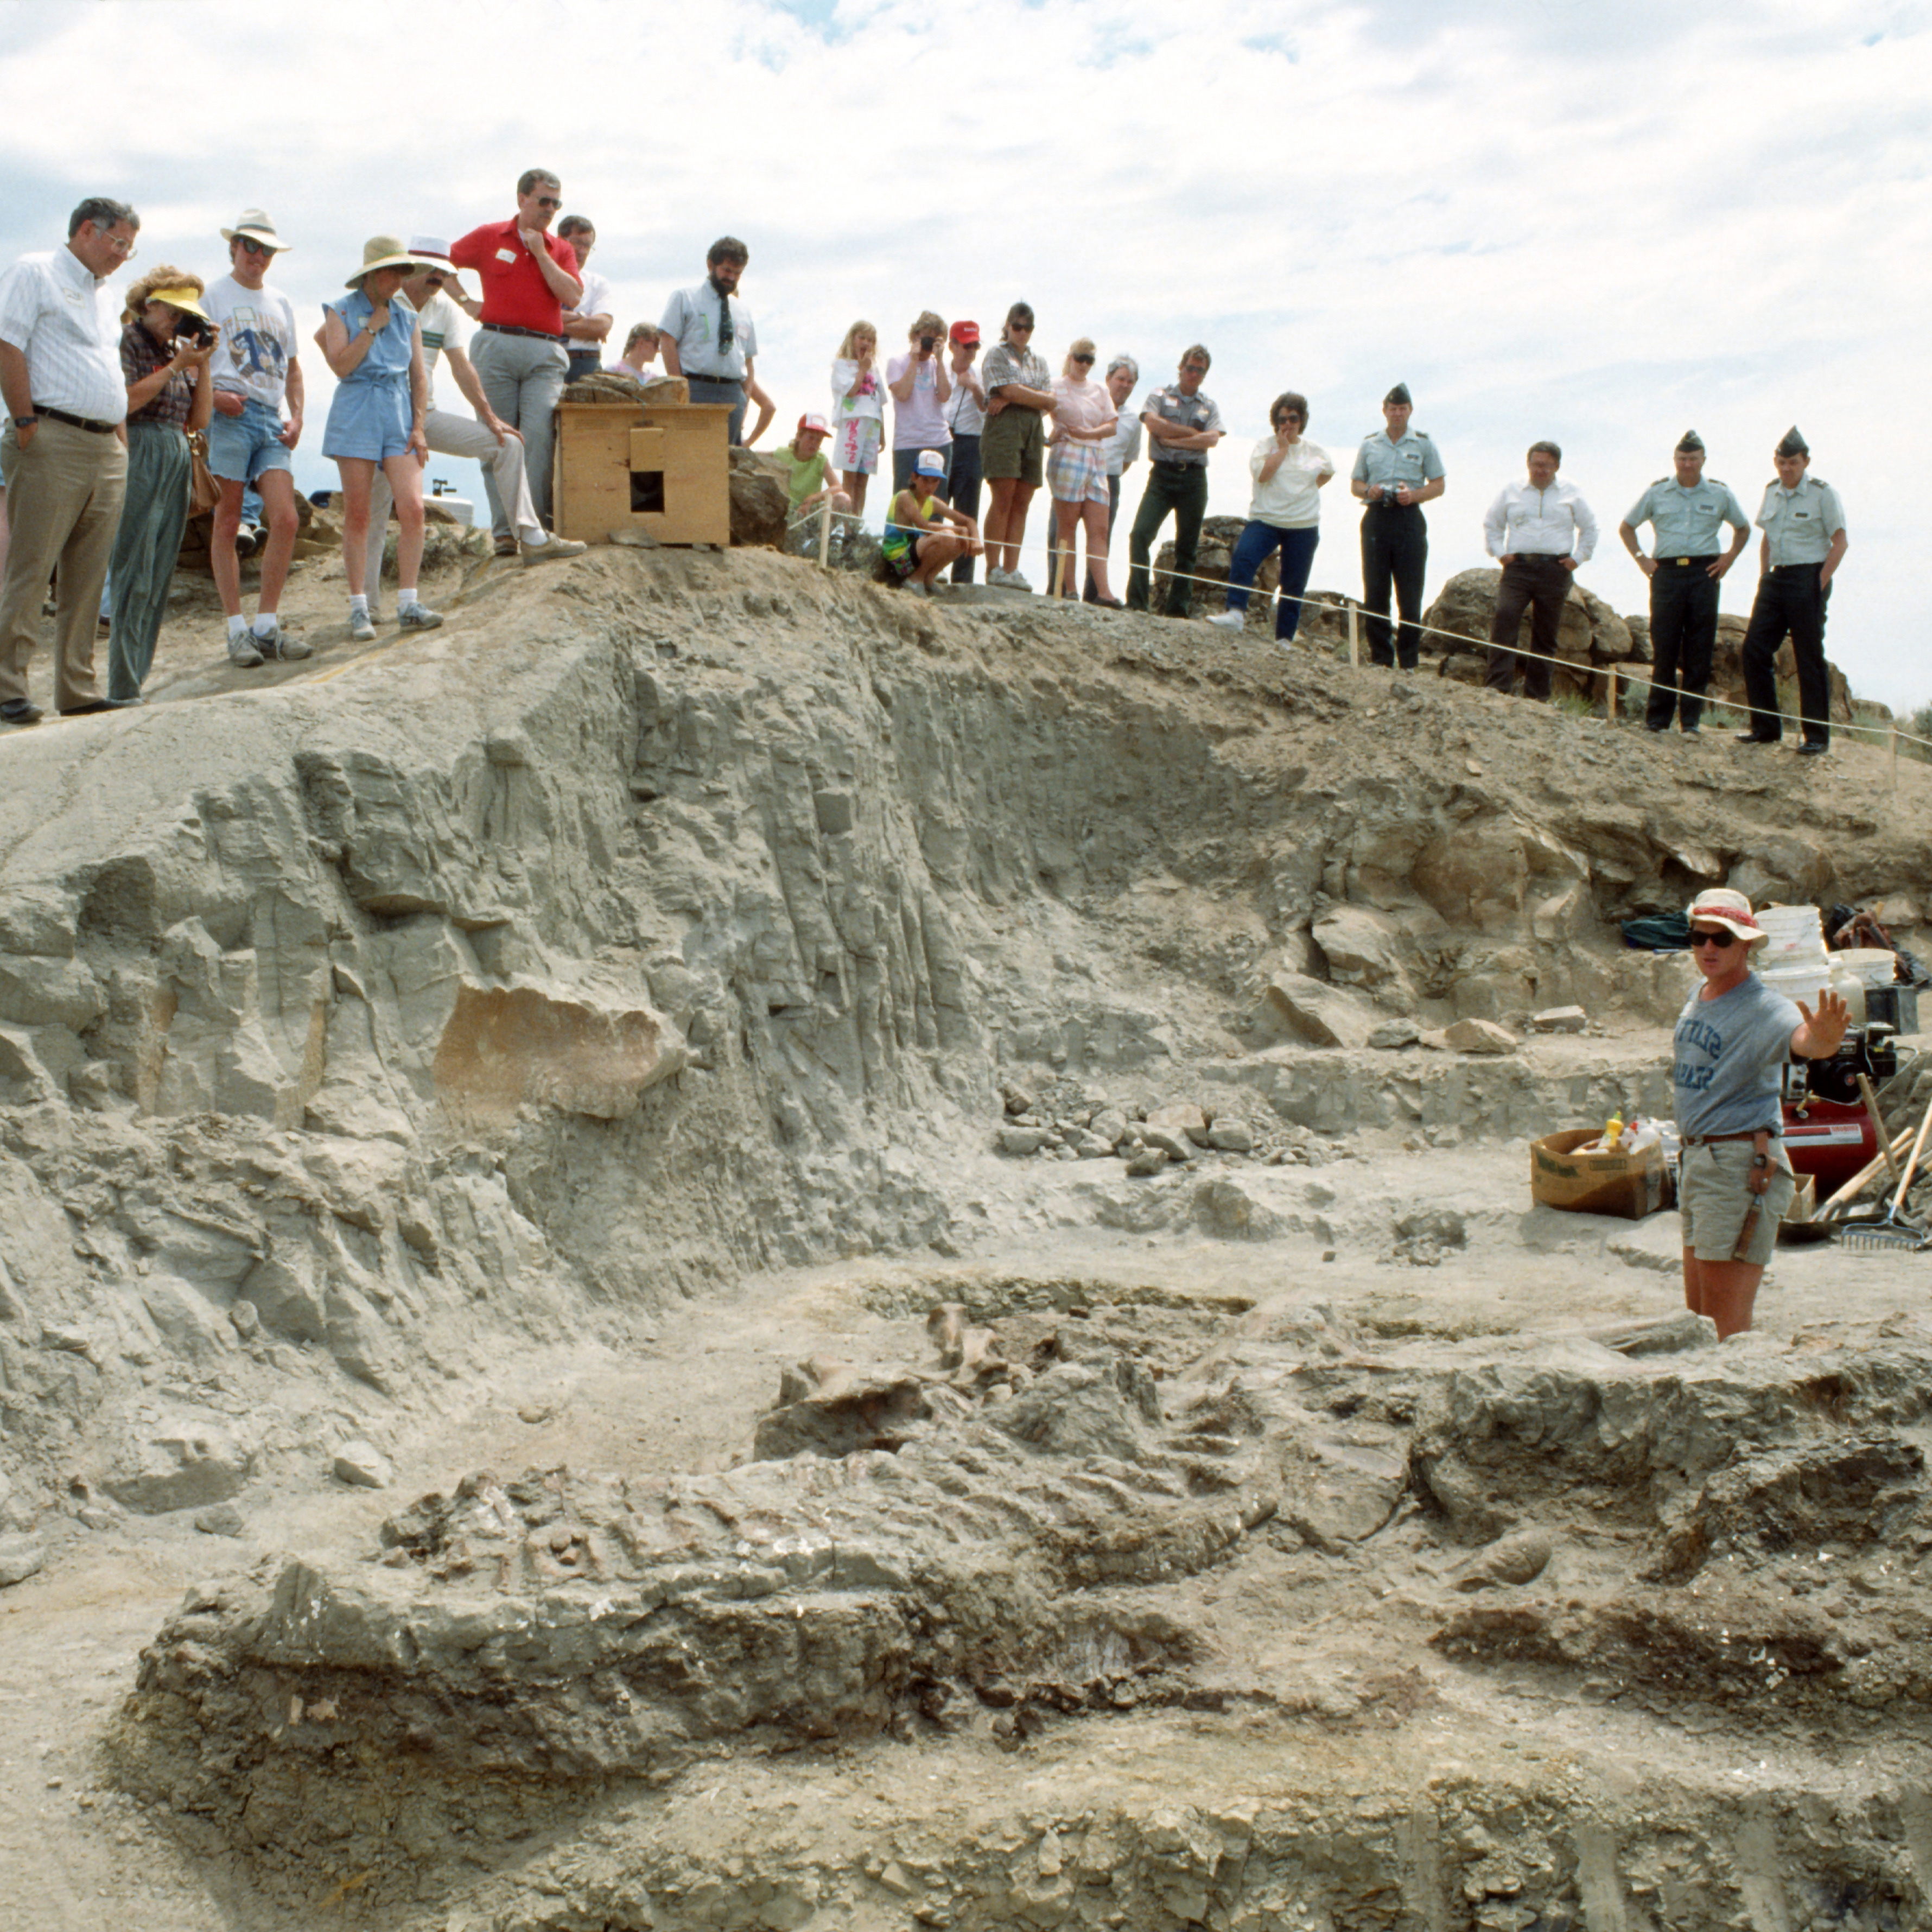 Graduate student Scott Sampson (foreground) describes skeletal structures of the exposed Wankel T. rex fossils near Fort Peck, Mont., in June 1990. The specimen was found by rancher Kathy Wankel.